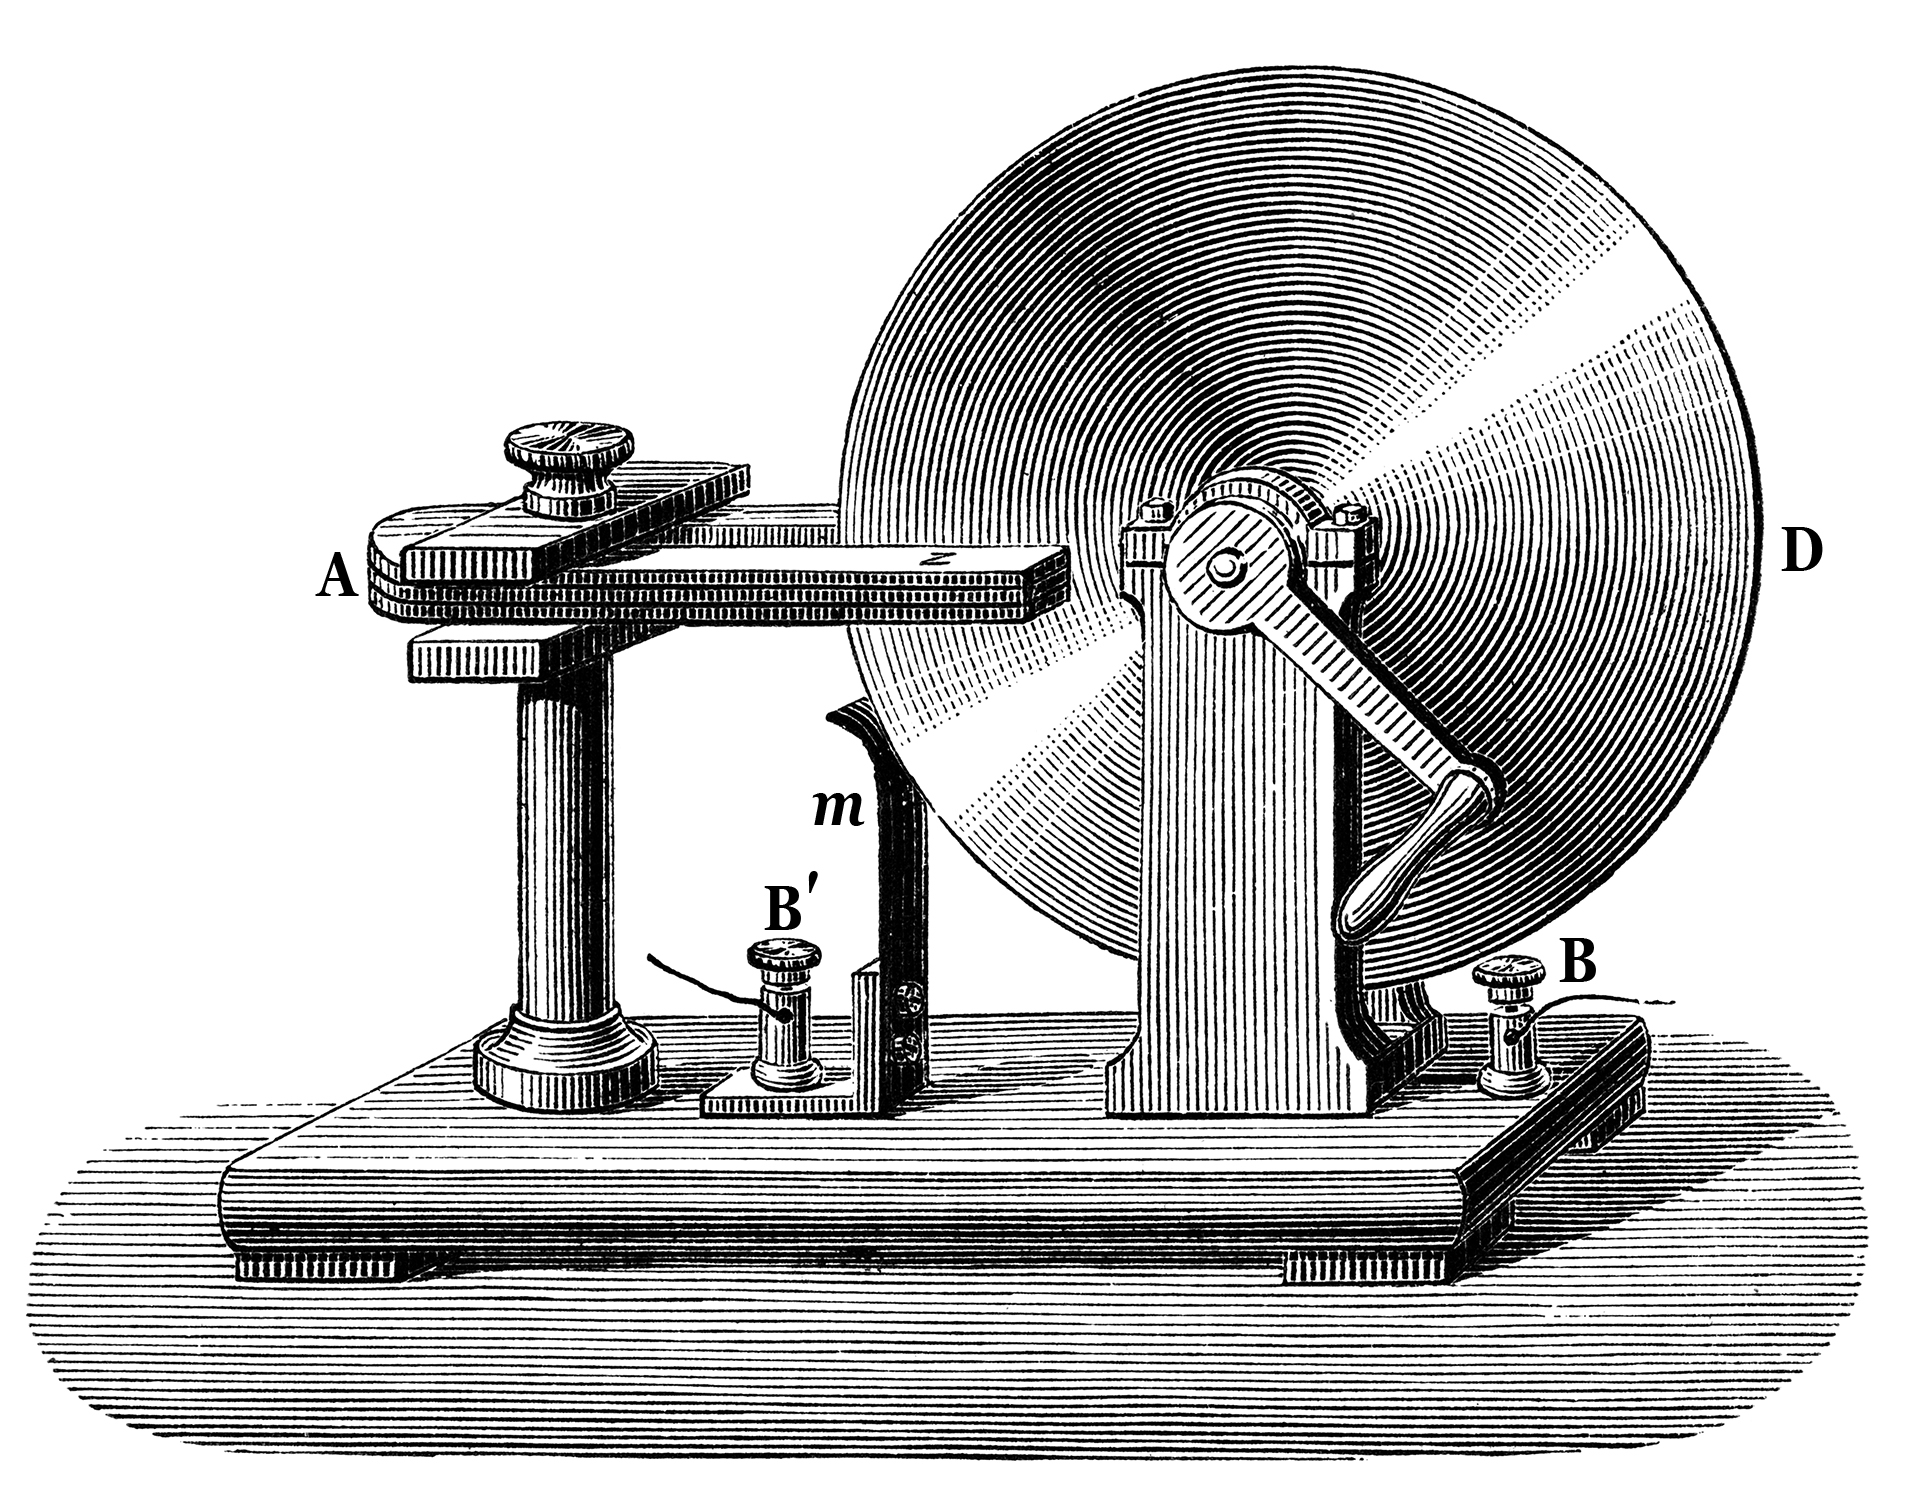 The first working electric generator designed by Michael Faraday.